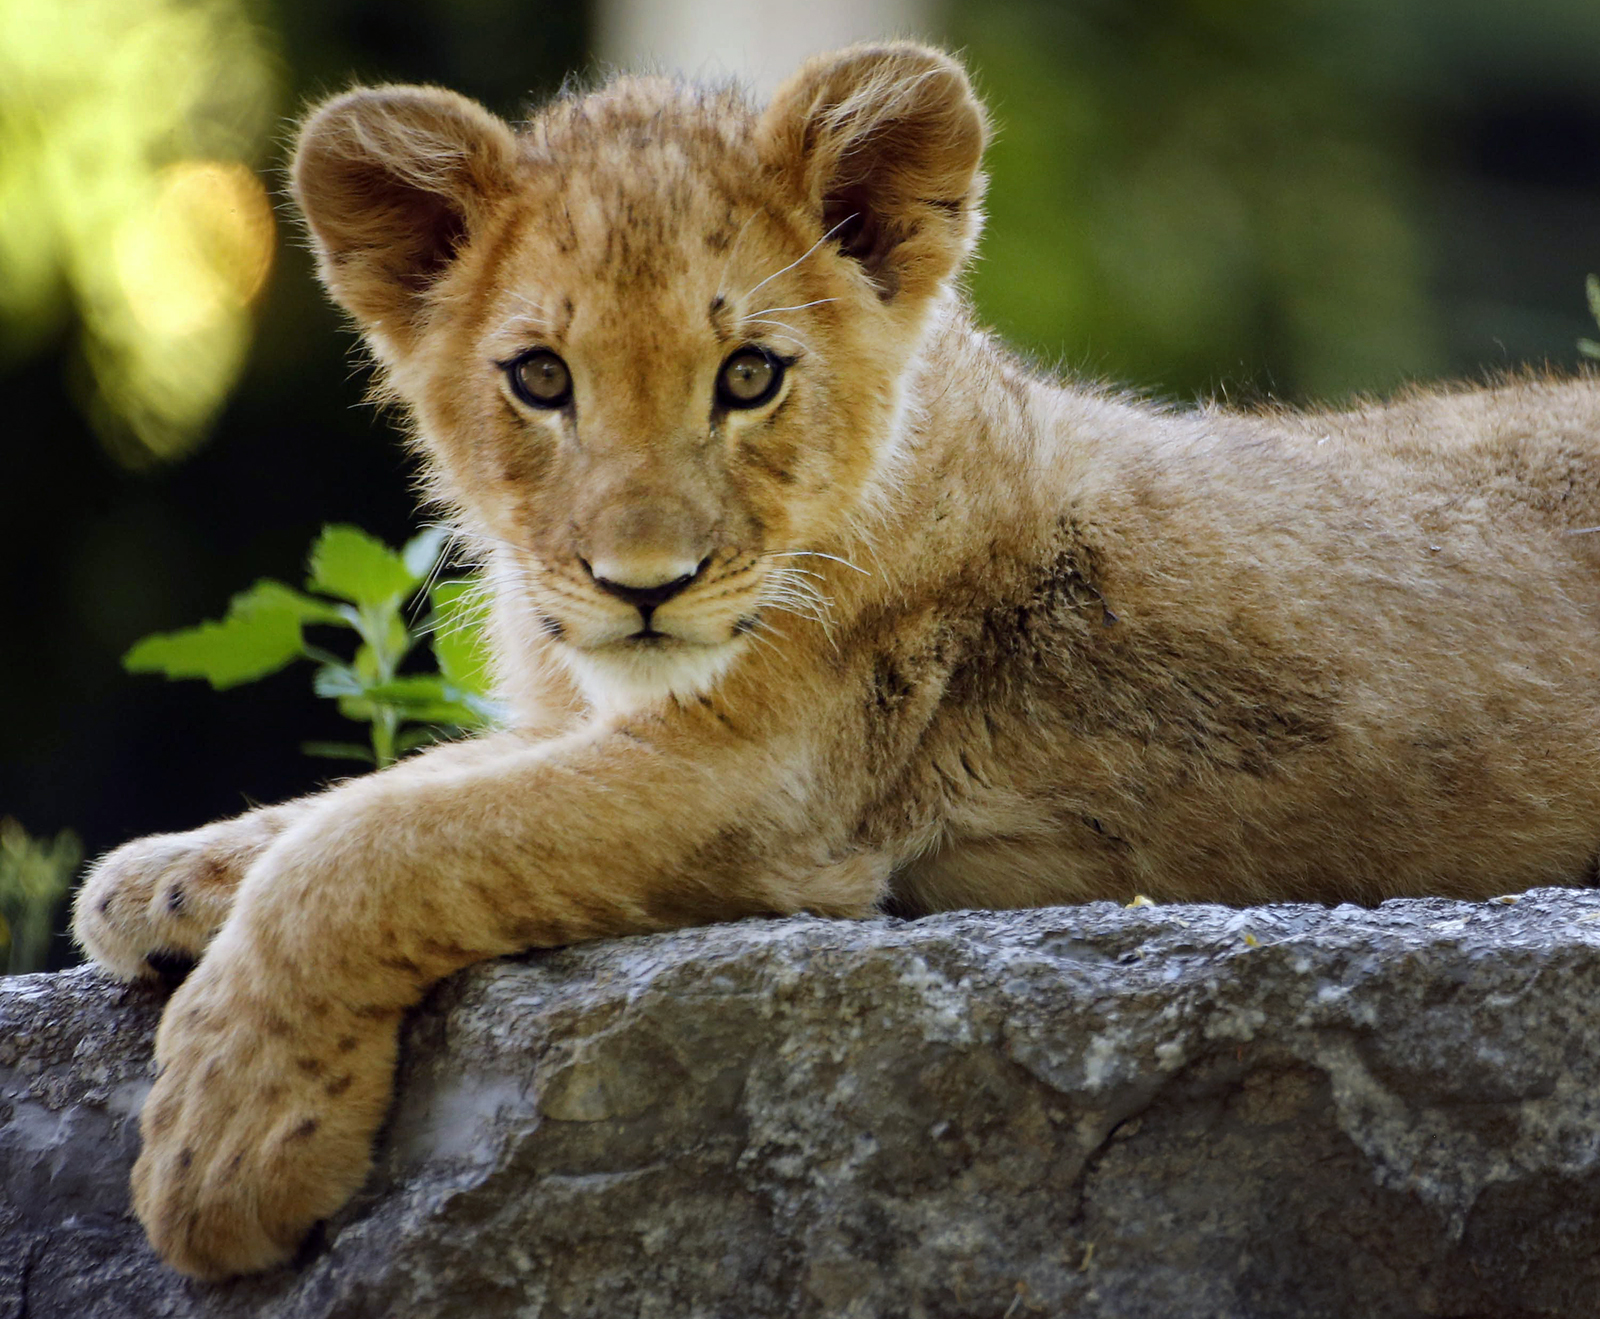 Tobias, the 15-month-old lion cub, lays down in the lion habitat as he makes his public debut at the Buffalo Zoo, Sunday, June 19, 2016.  (Derek Gee/Buffalo News)